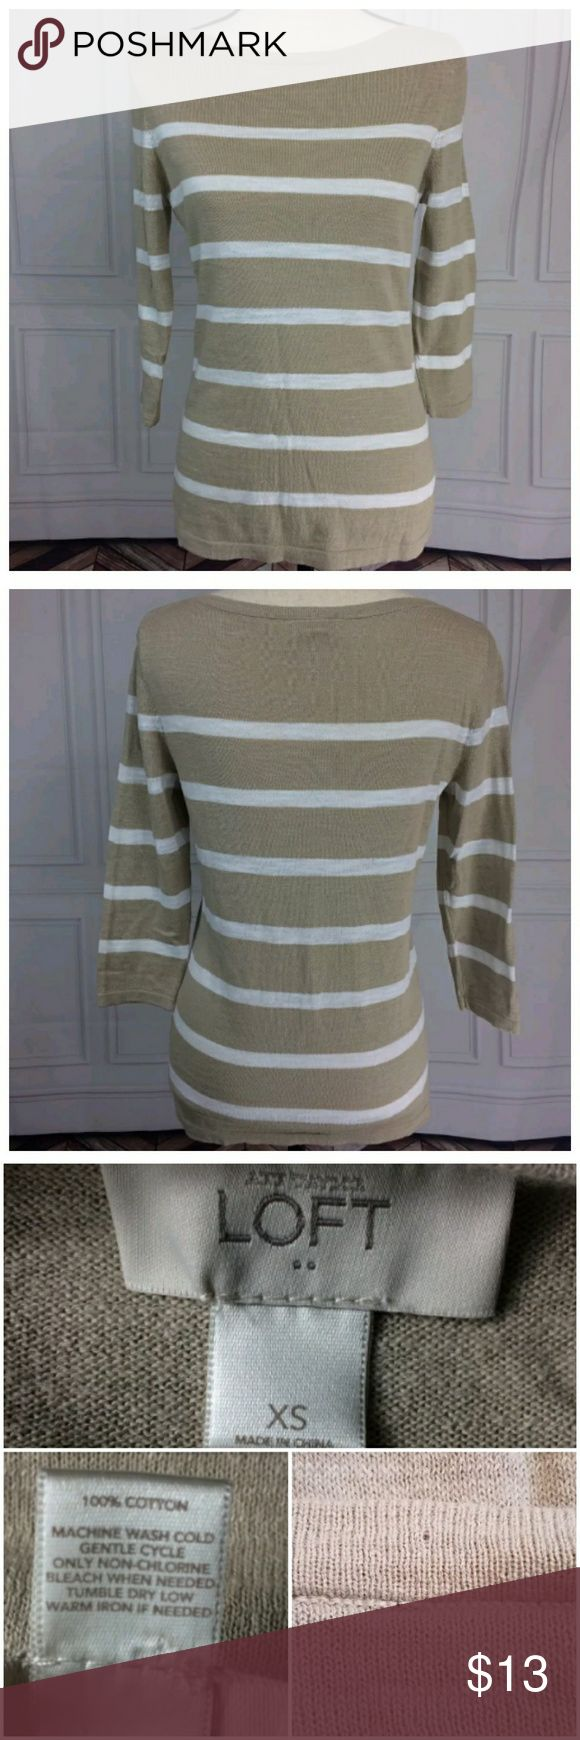 Ann Taylor Loft Factory XS Tan White Thin Sweater Ann Taylor Loft Factory XS Tan White Striped Thin Sweater  3/4 Sleeve  Pullover style  Small hole where a tag was attached. See picture. Otherwise, still in great condition!  See pictures for flaws, fabric content, cleaning instructions and measurements.  I check all items for flaws and include any in the listing. If I have missed any, it is by mistake.  Thank you for looking at my store! LOFT Sweaters